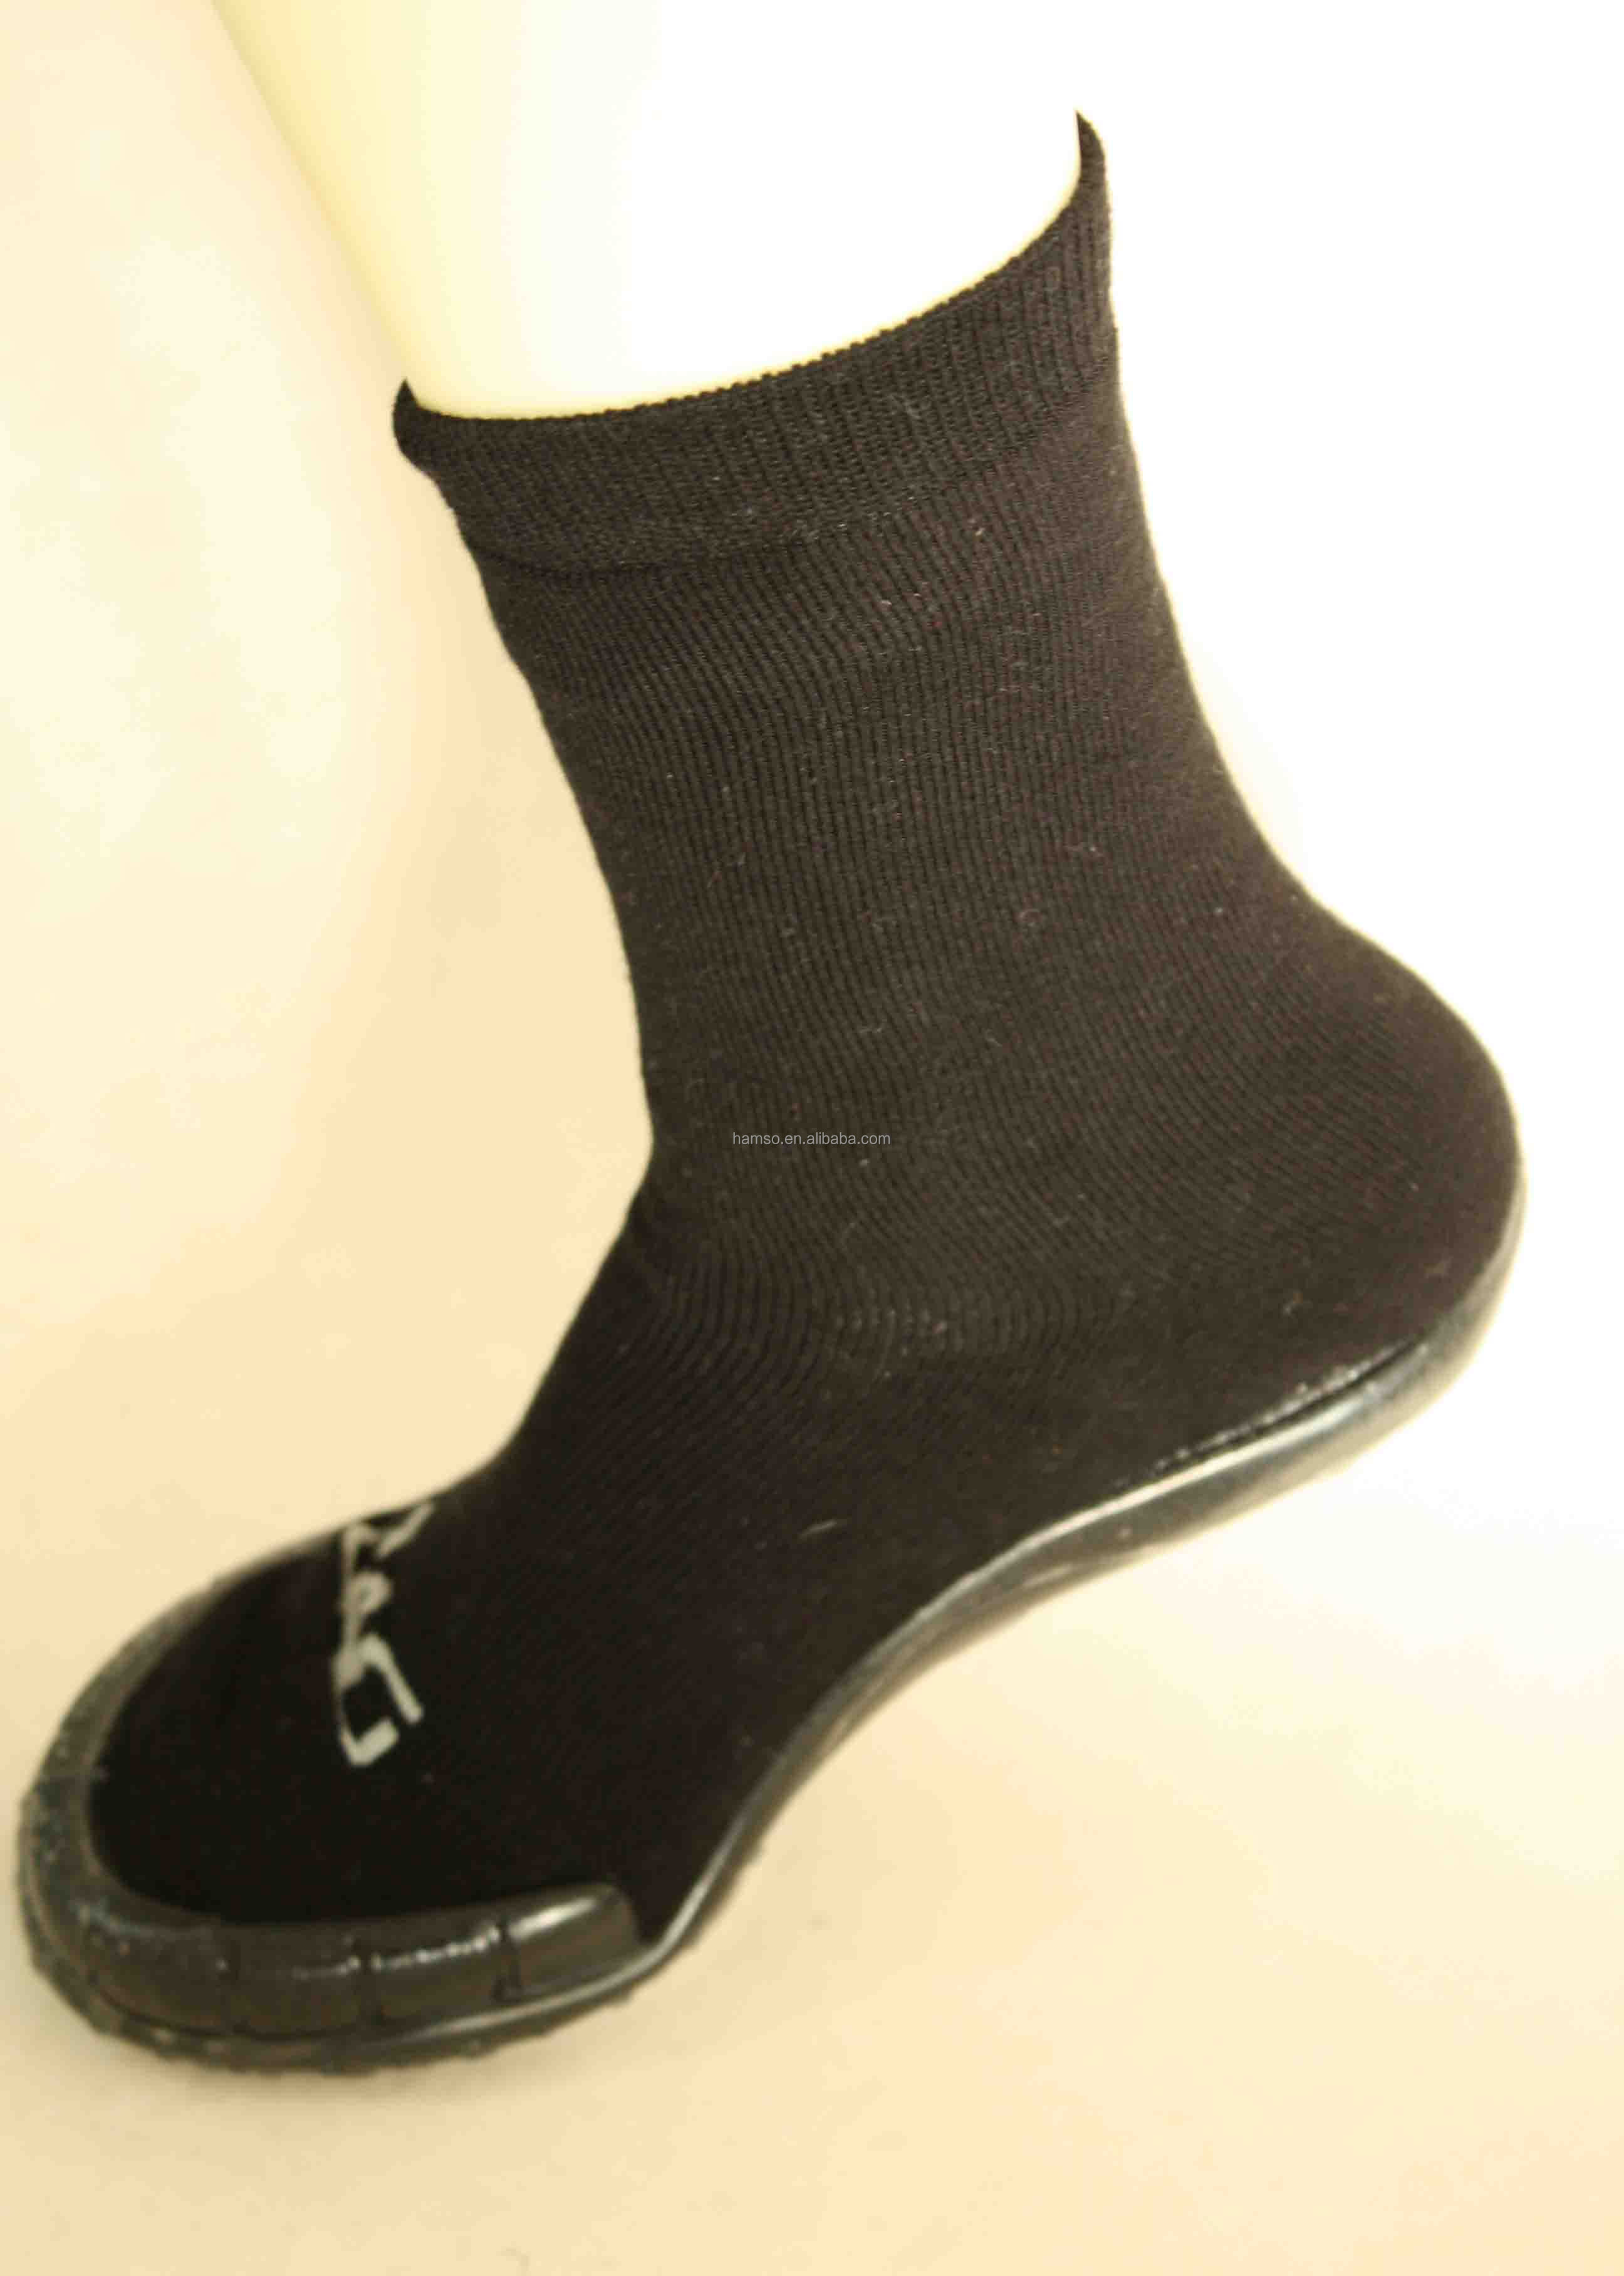 Man Knitted Socks With Rubber Soles Buy Adult Rubber Sole Socks